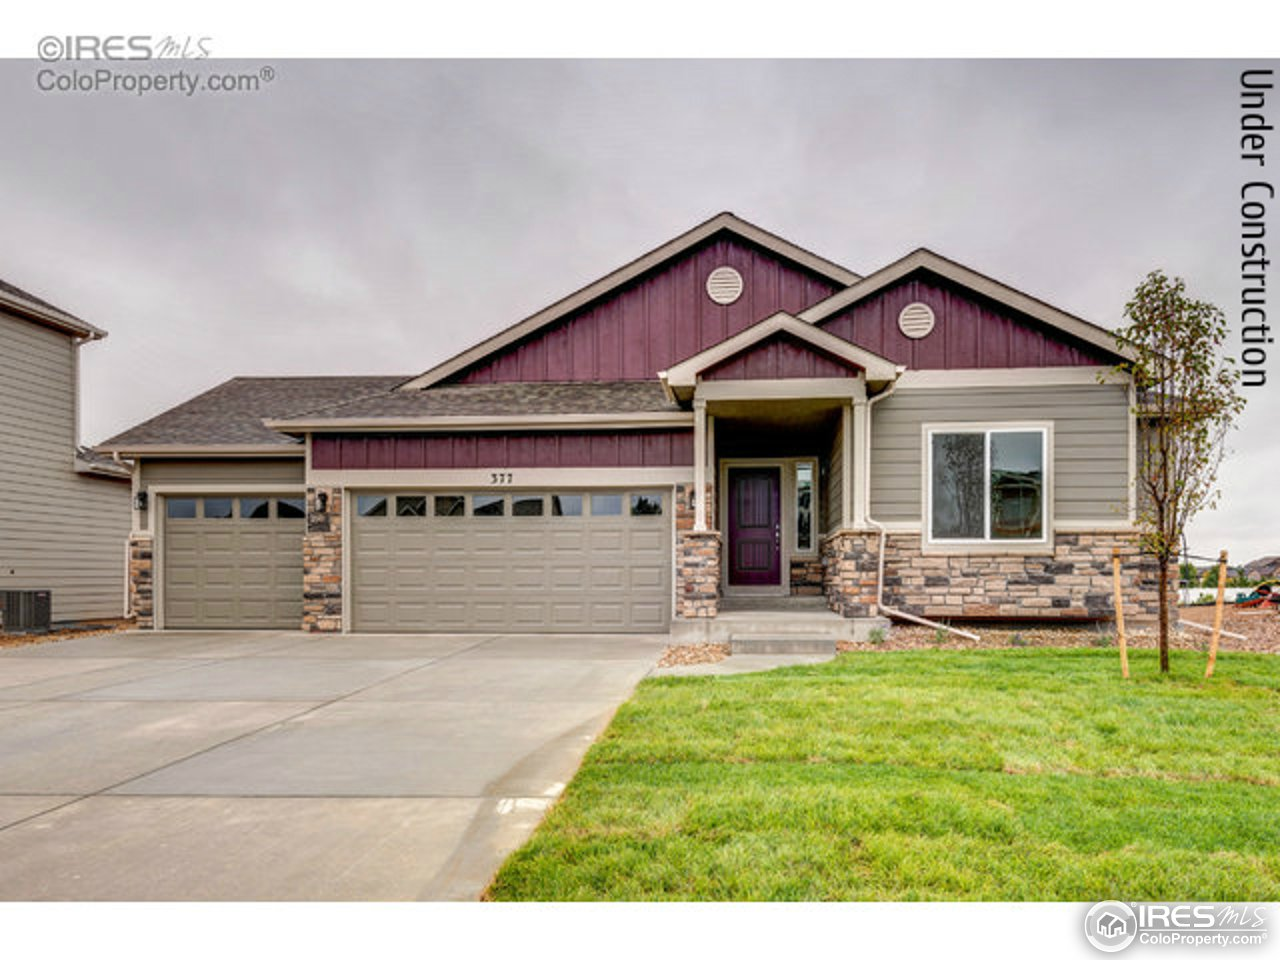 6151 Carmon Ct, Windsor, CO 80550